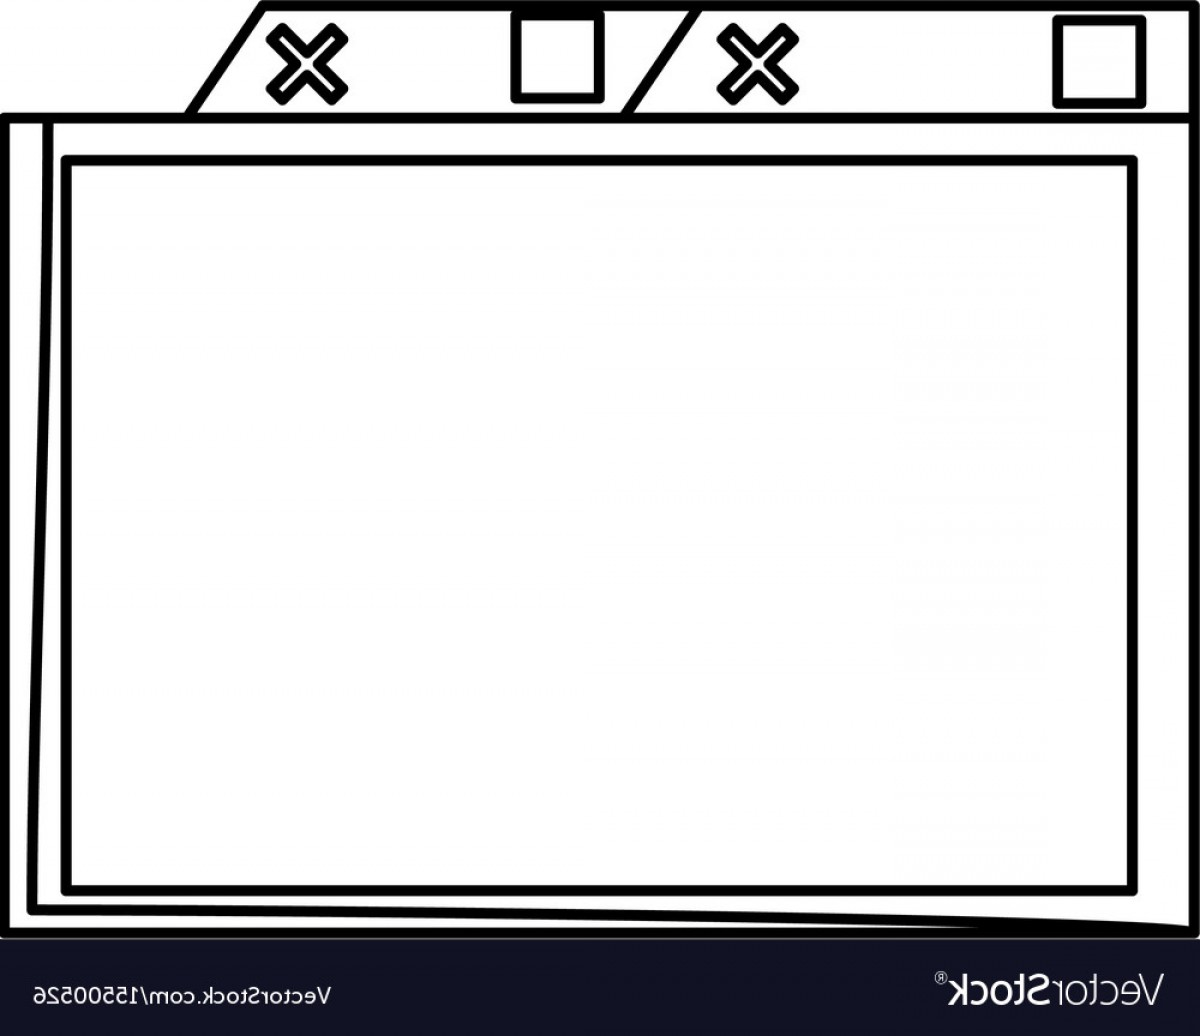 Windows 8 Phone Icon Vector: Isolated Simple Browser Window Vector